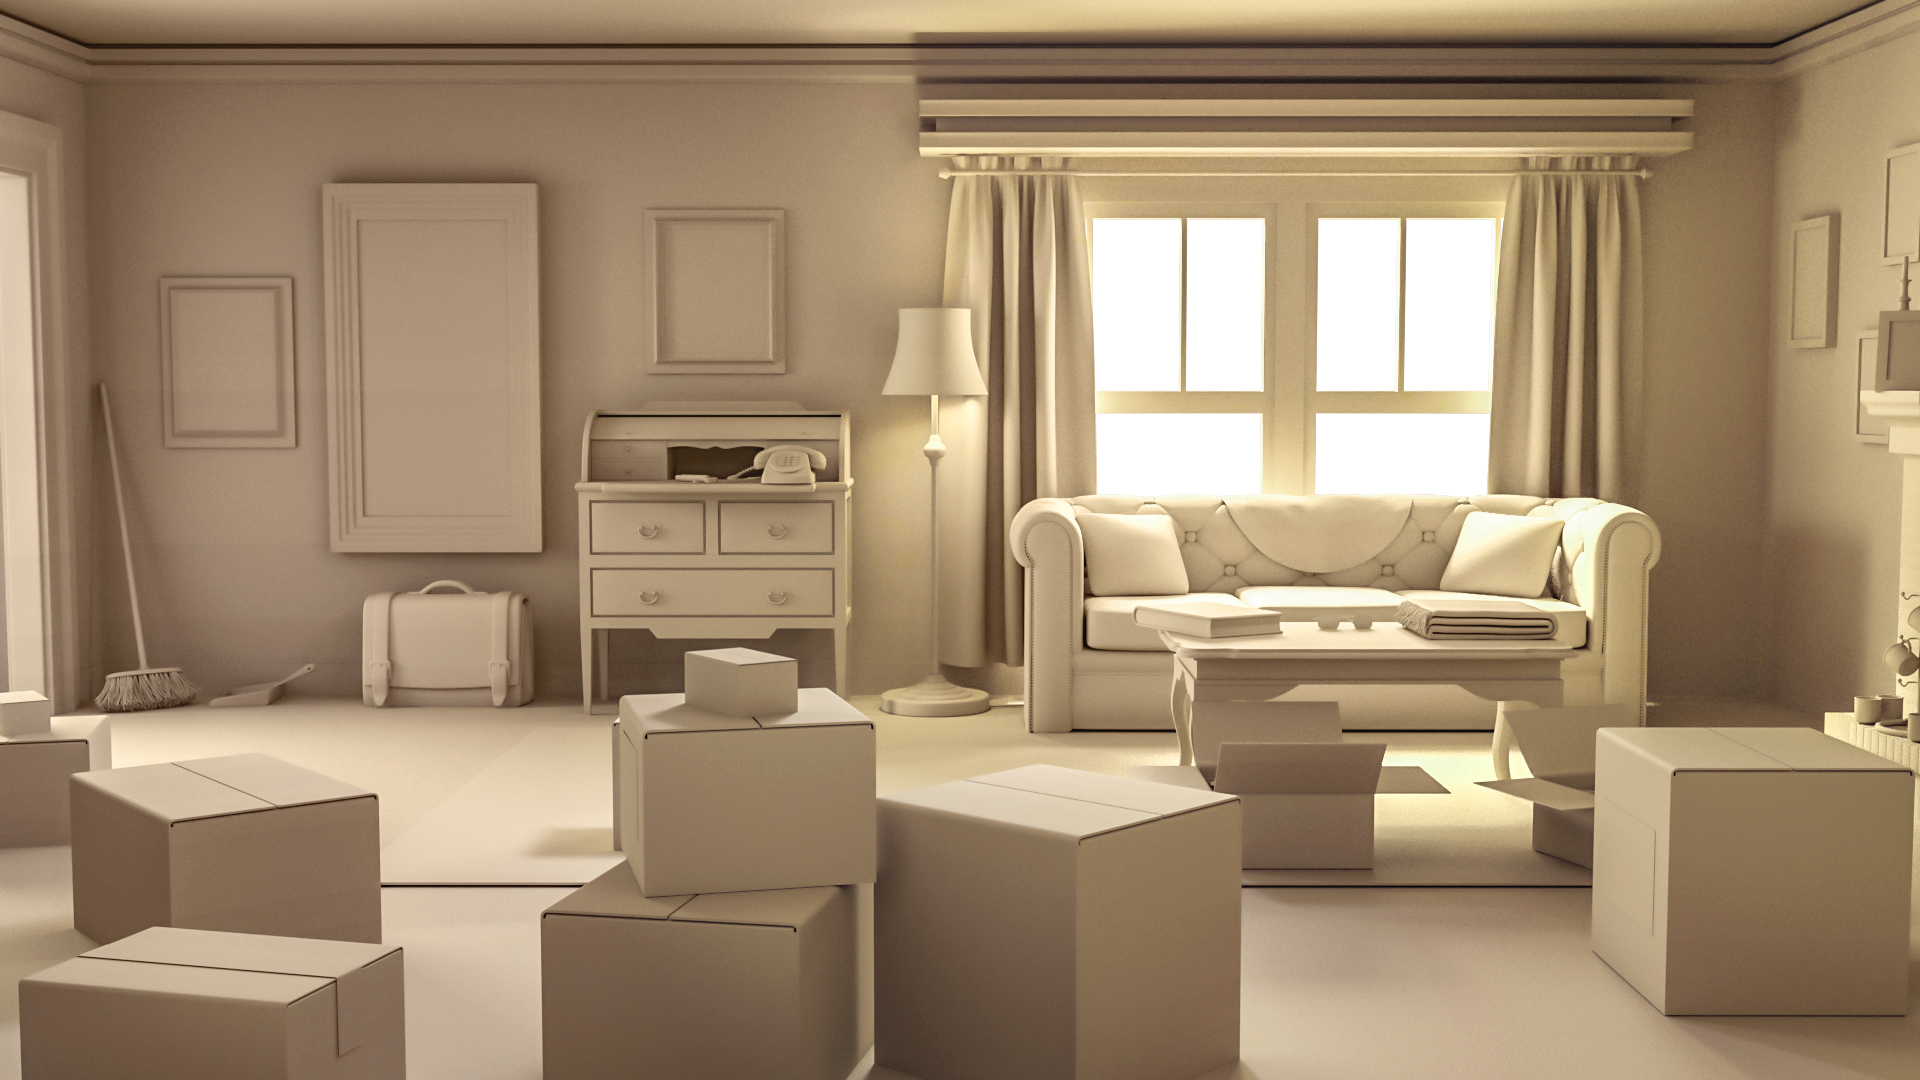 HSH_IntHouse_Model